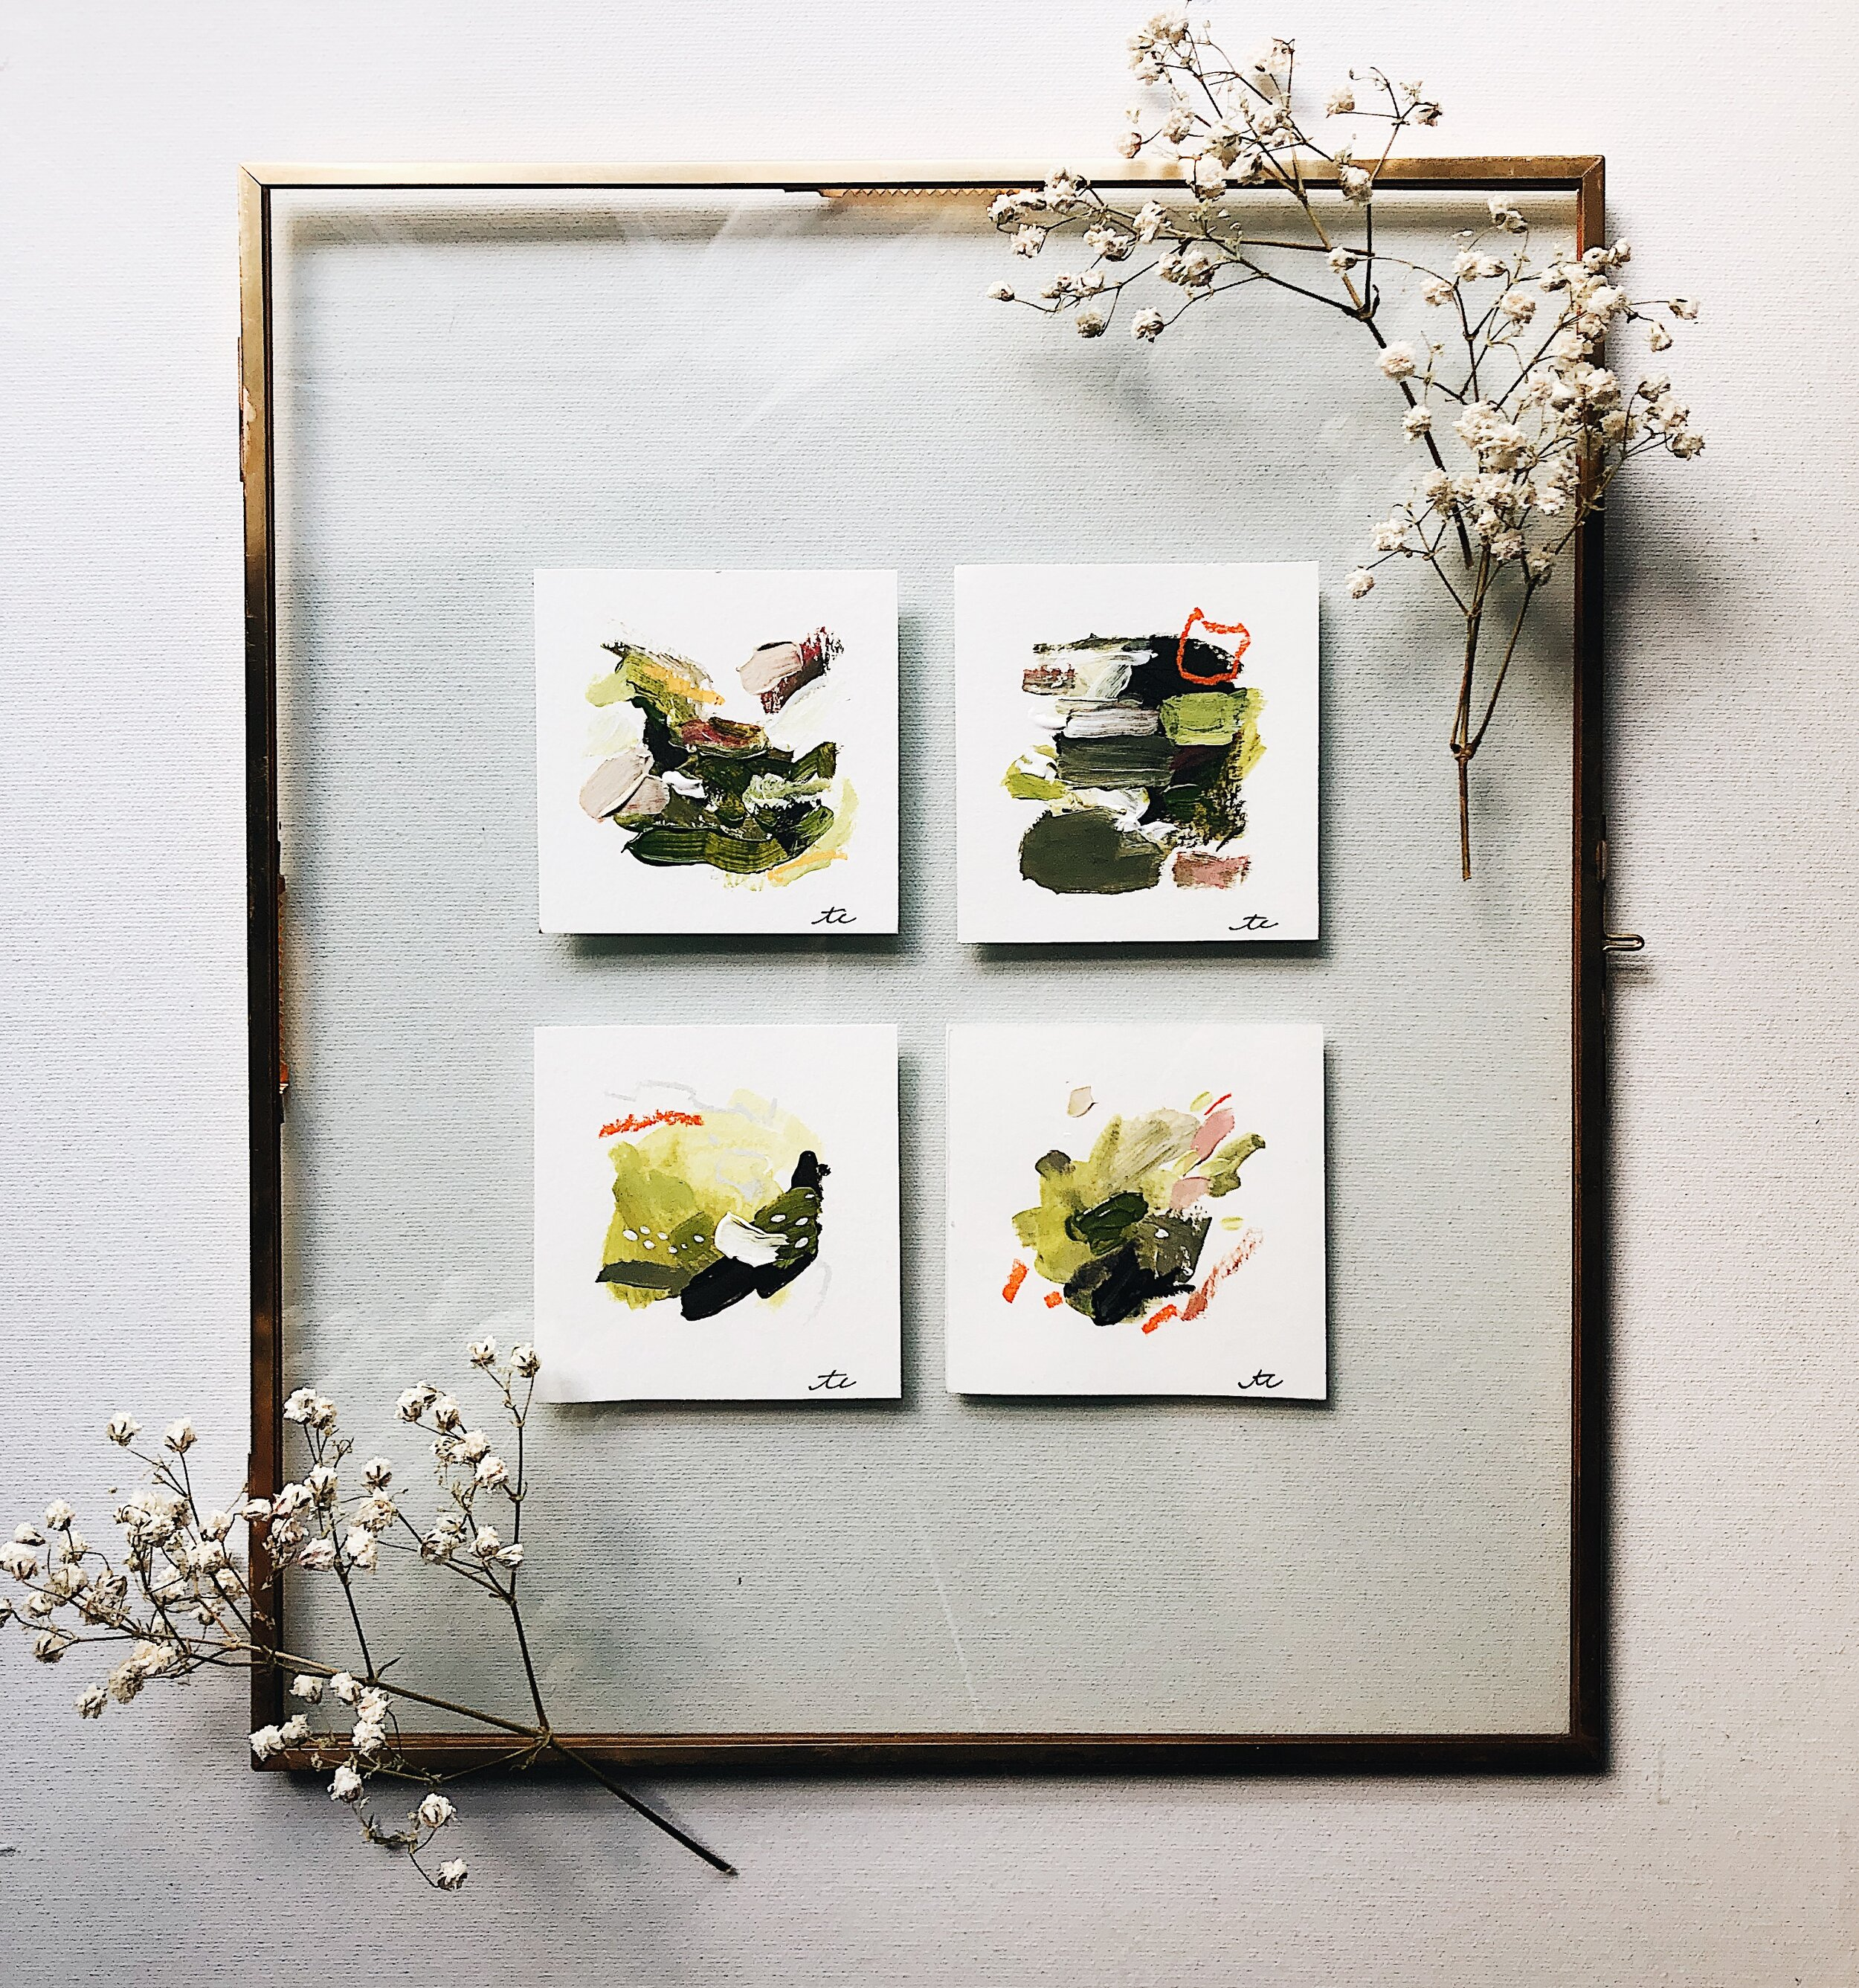 "4-Piece Original Paintings w/ Frame    Details & Dimensions:  - Four 3"" x 3"" Original Acrylic Paintings w/ Pastel ; ""Confidence"" / ""slow-blooming Romace"" ""/ ""Decision"" / ""Not a Bad Idea""  - 11"" x 13"" Metal Frame w/ Antique Brass Finish + clear glass overlay    $160"